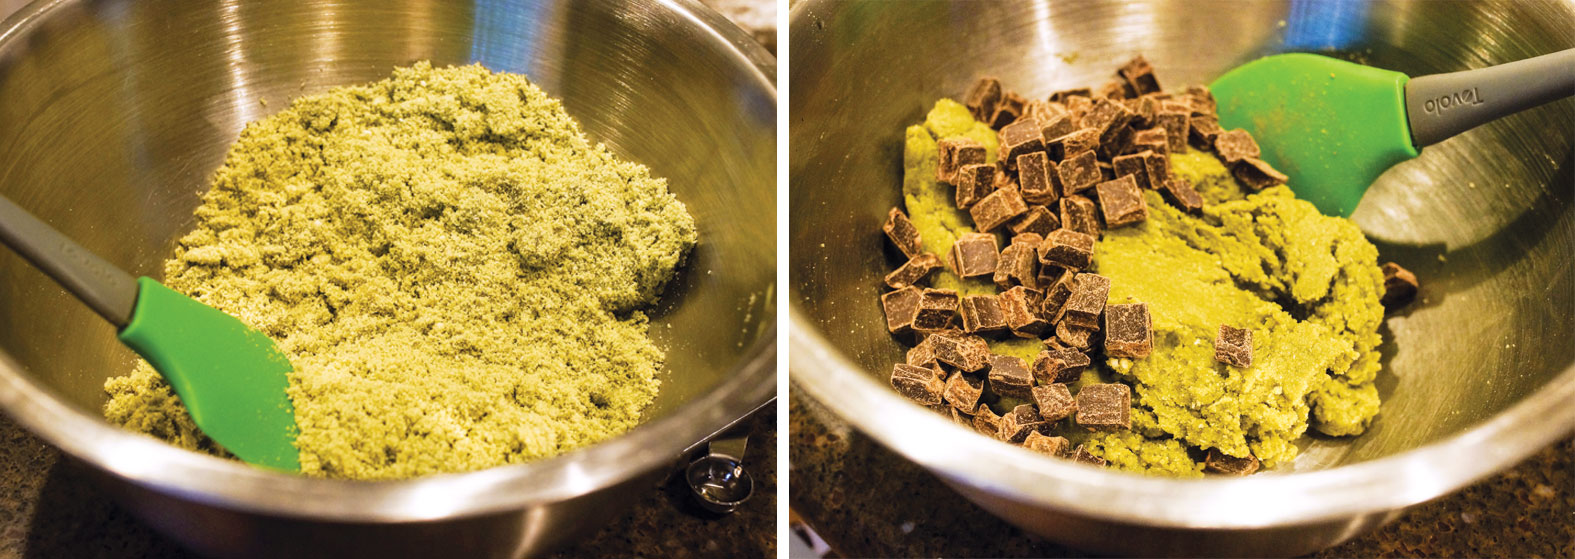 matcha mint chocolate chip cookie dough with chocolate chips being added into a mixing bowl